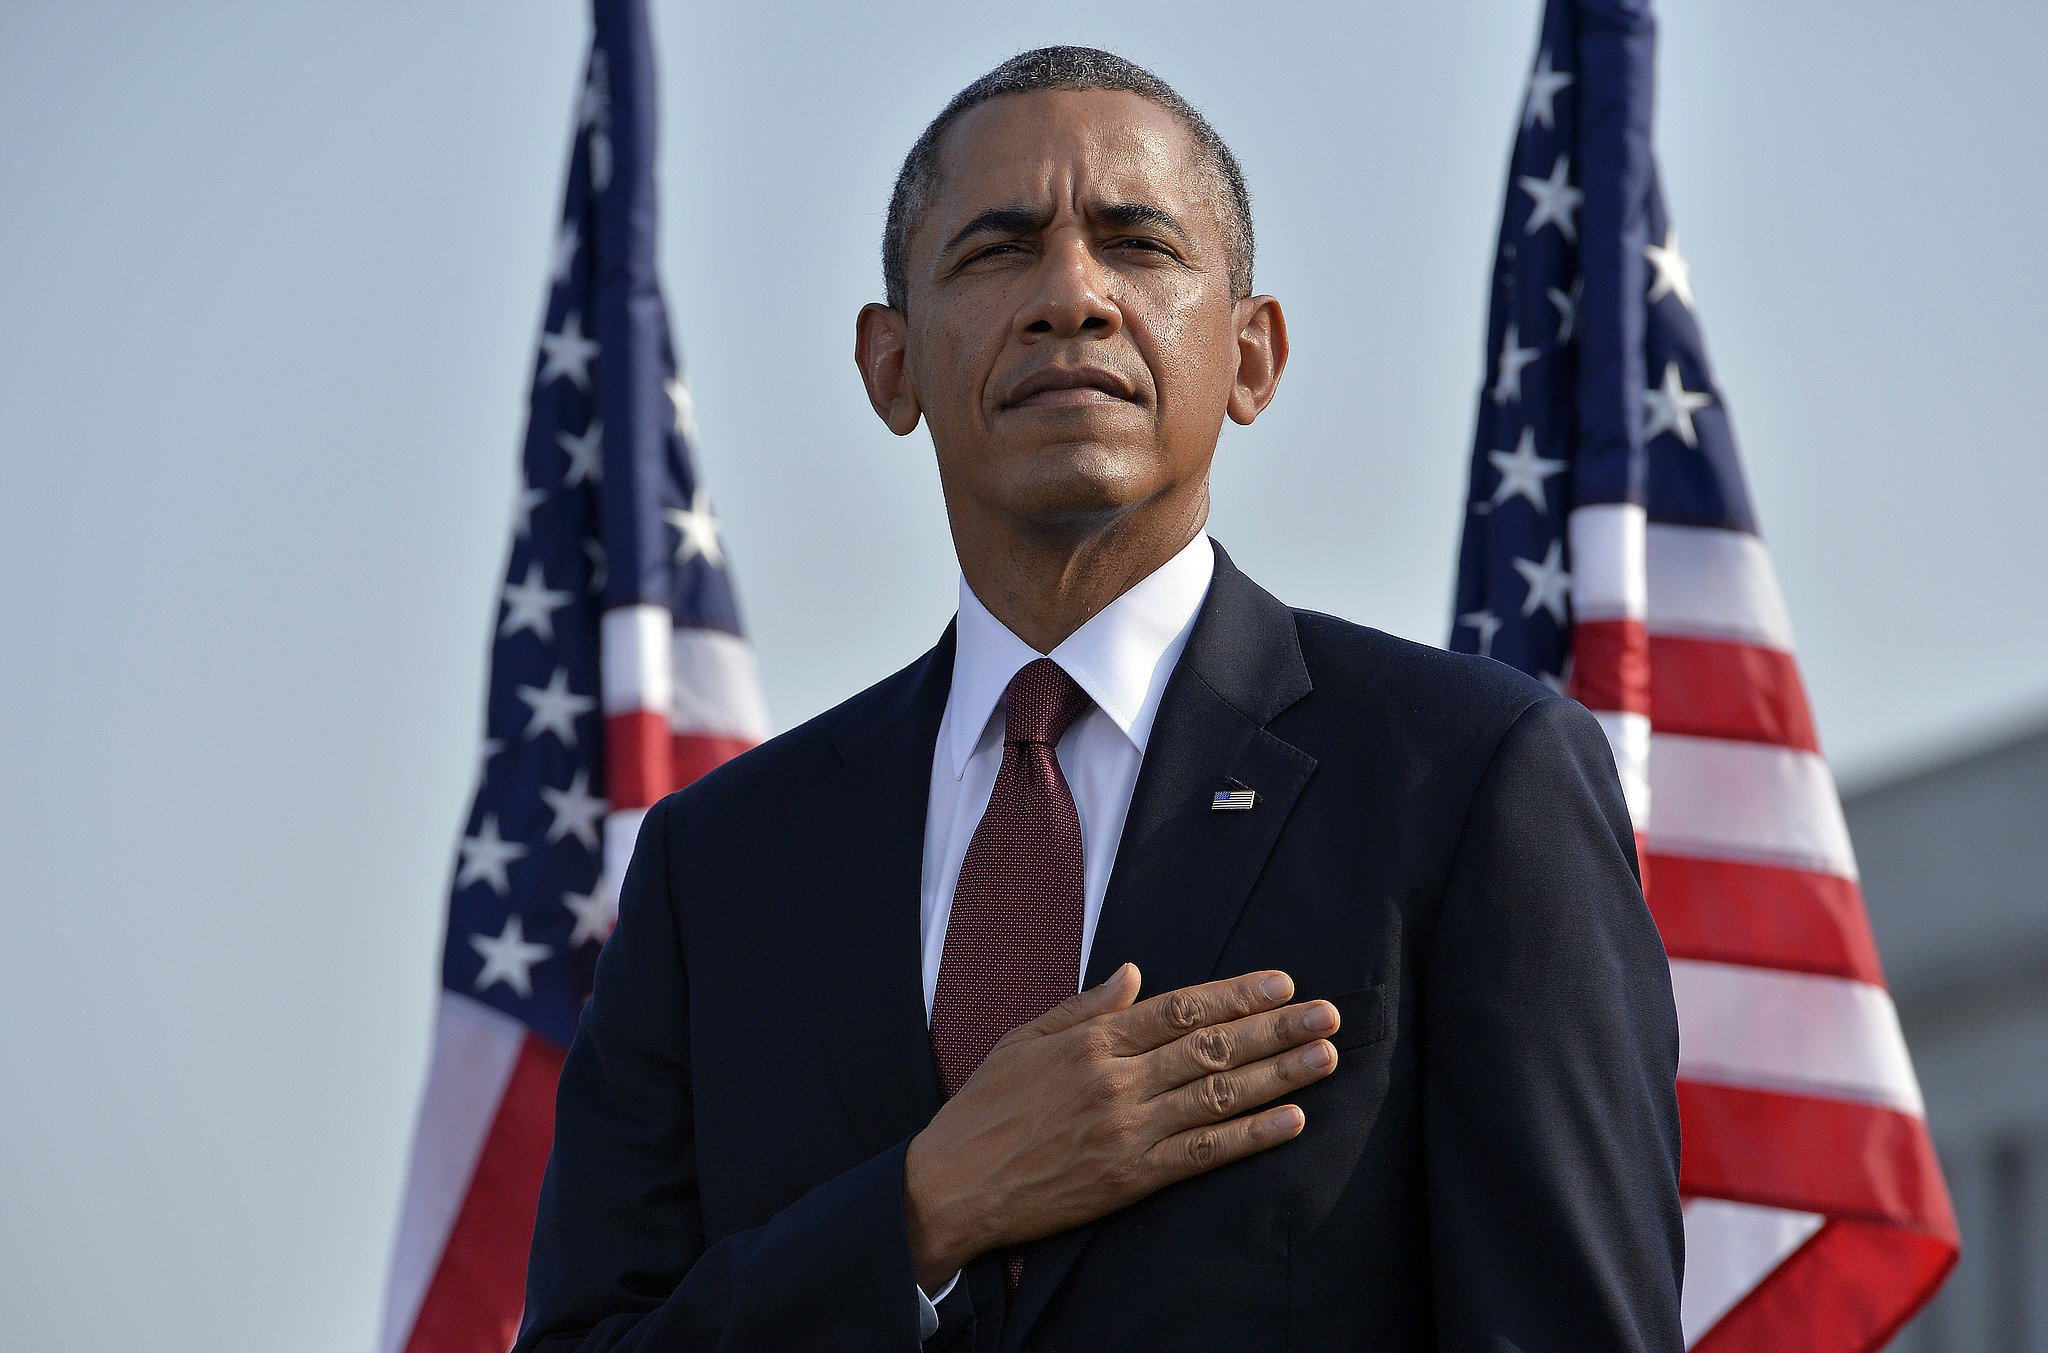 President-Obama-stood-his-hand-his-heart-during-moment